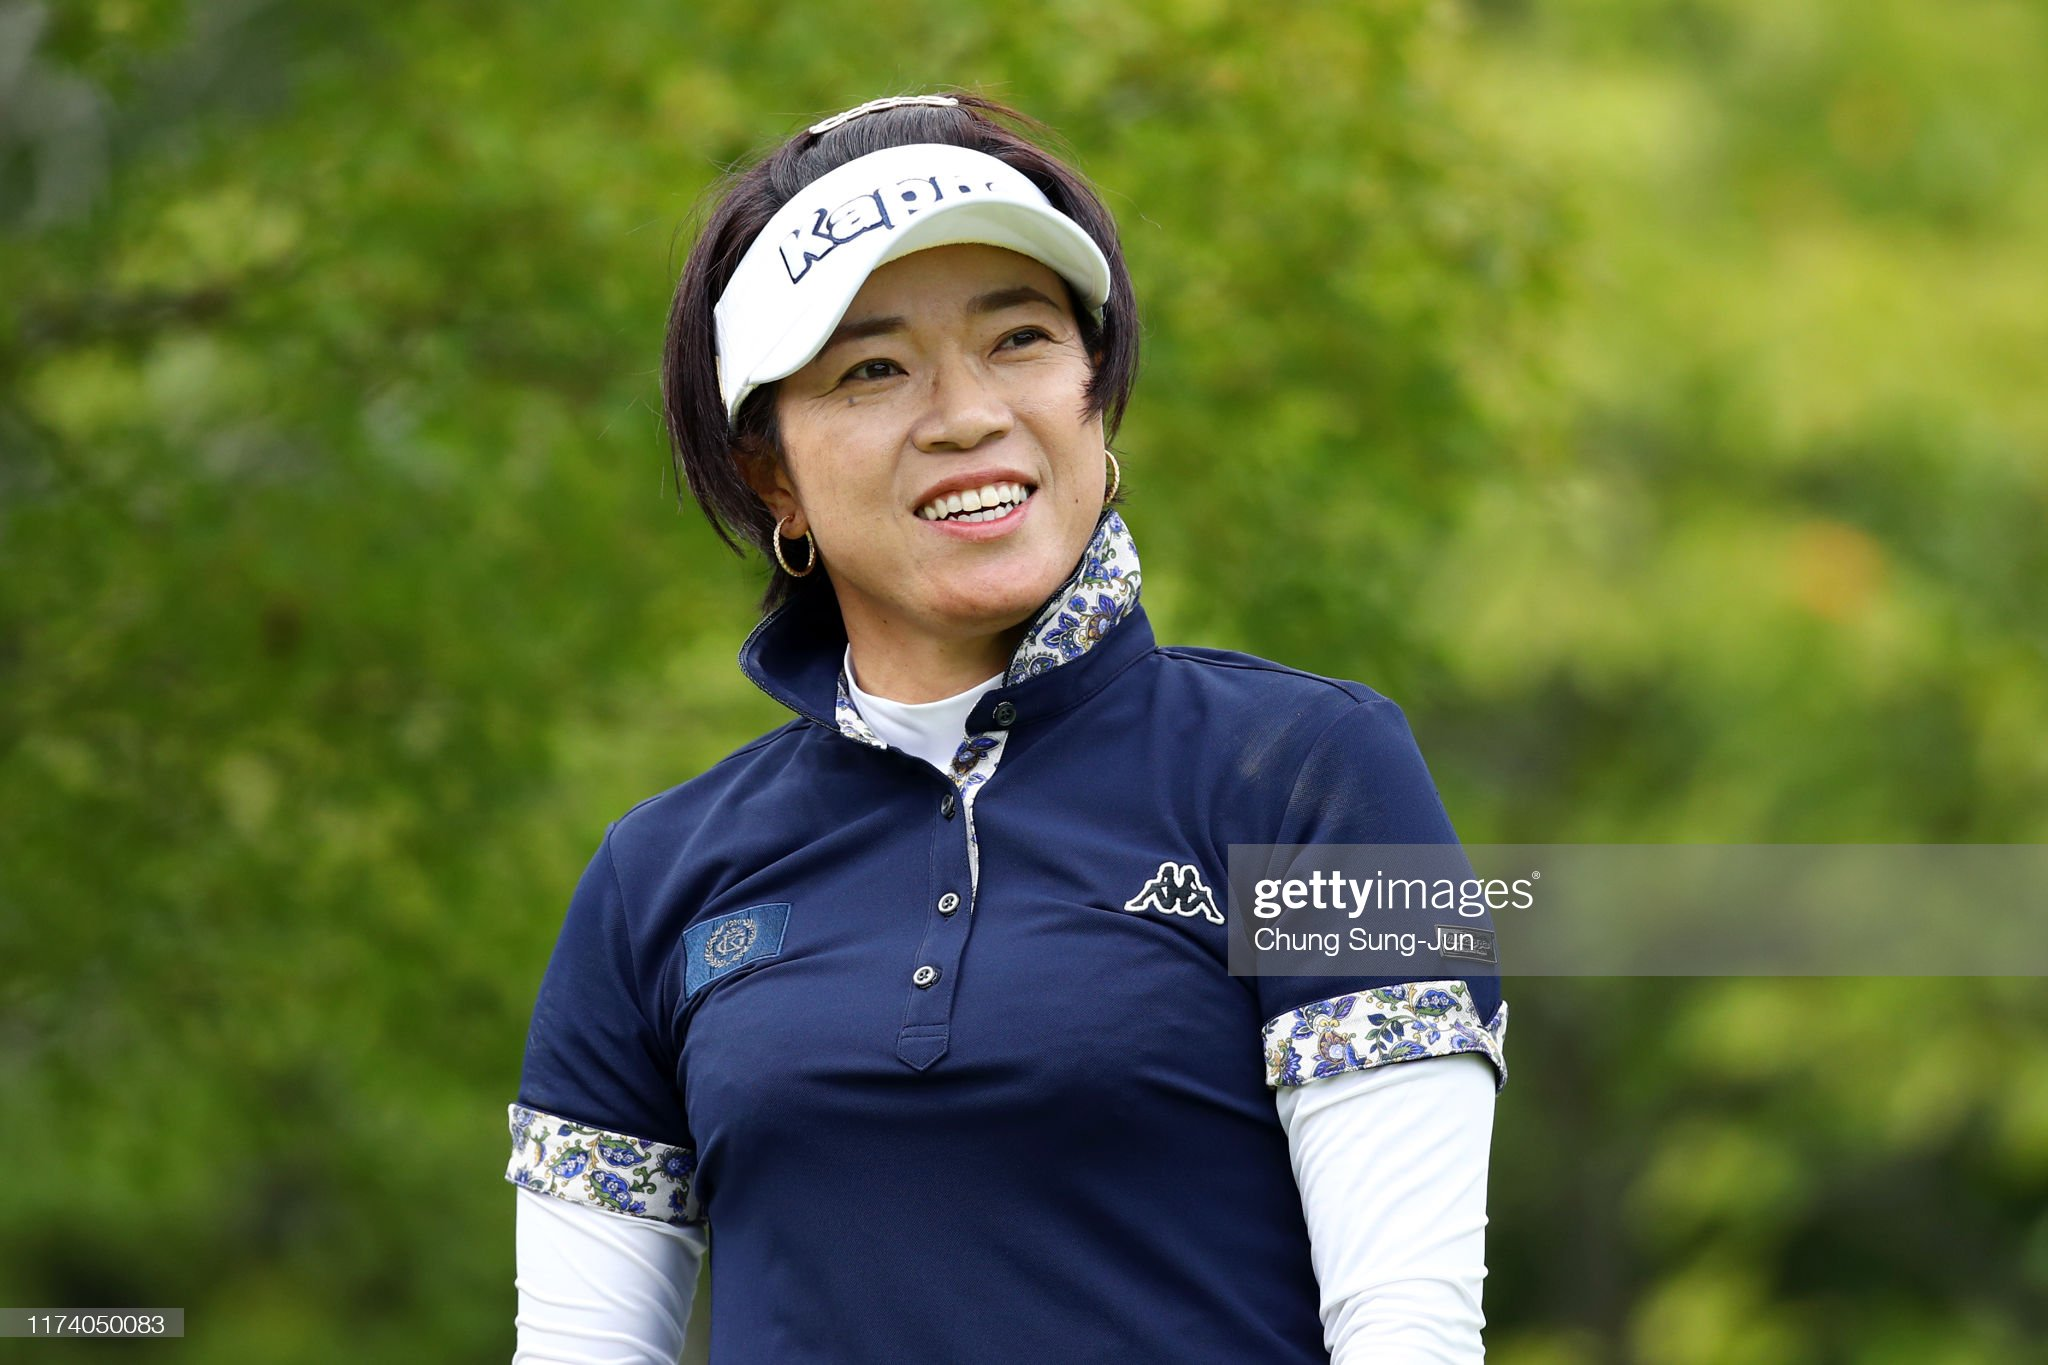 https://media.gettyimages.com/photos/shiho-oyama-of-japan-reacts-after-her-tee-shot-on-the-6th-hole-during-picture-id1174050083?s=2048x2048